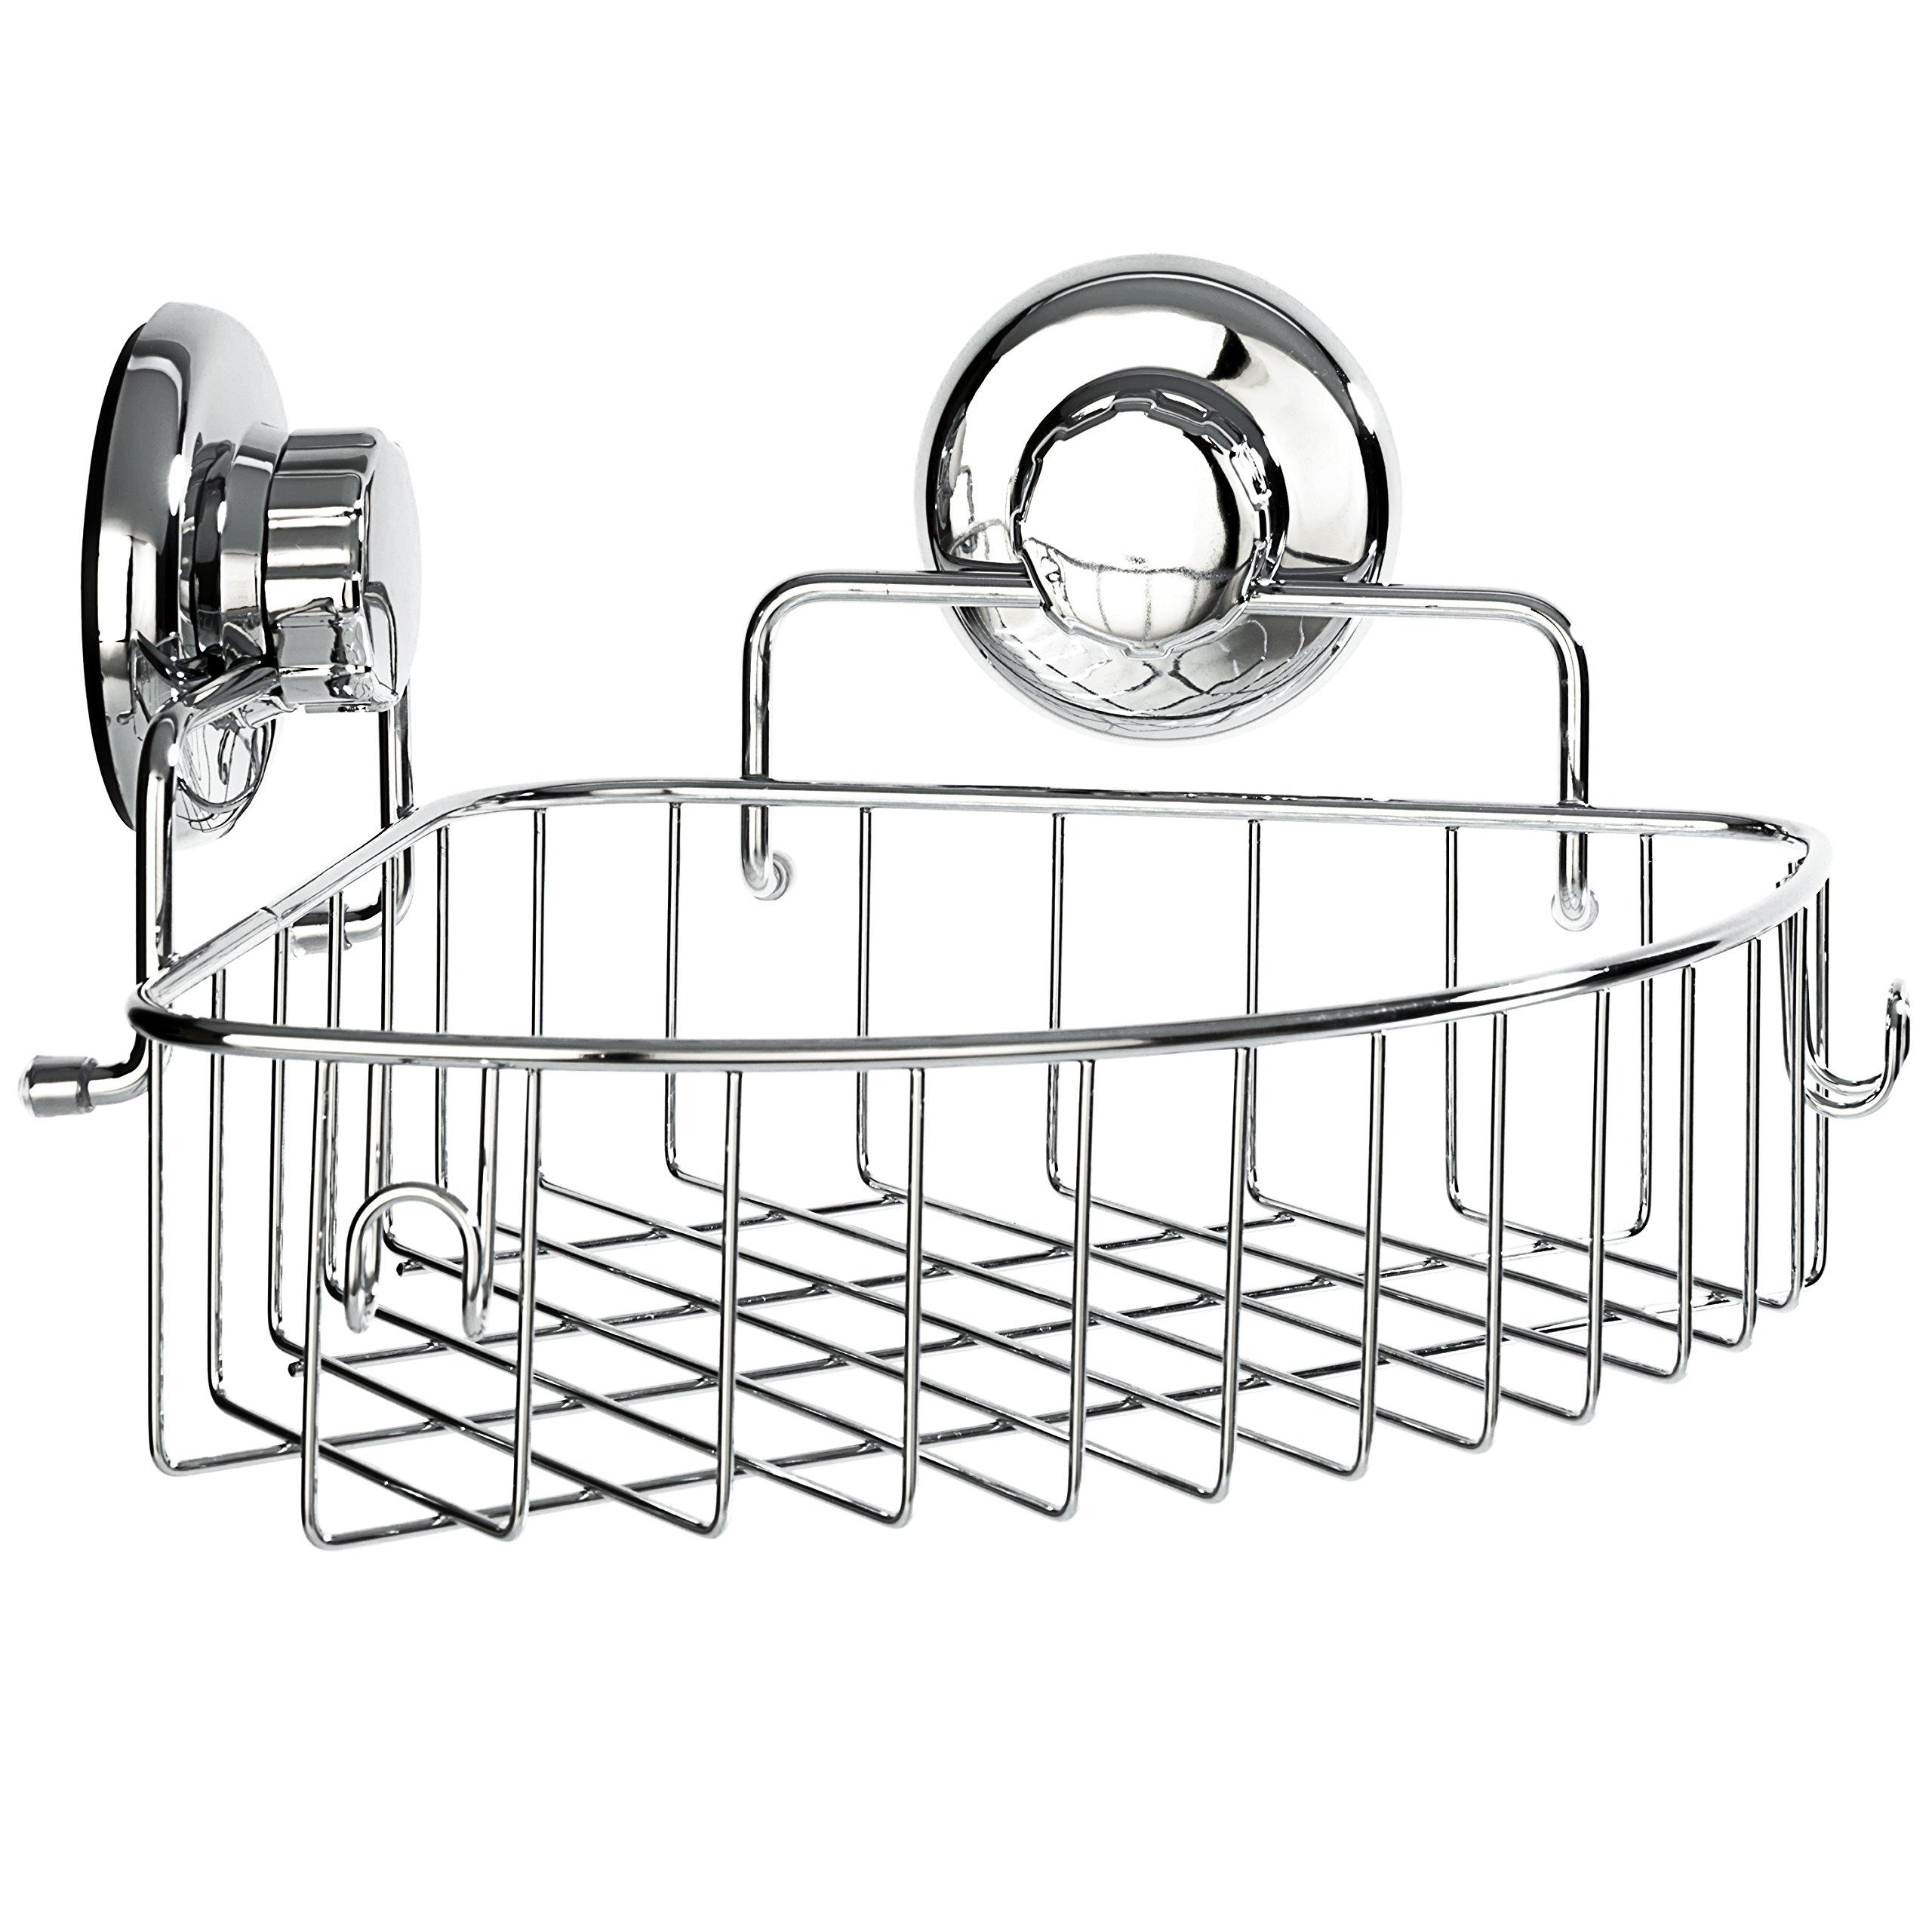 HASKO accessories Corner Shower Caddy with Suction Cup - Stainless Steel Basket for Bathroom Storage (Chrome)